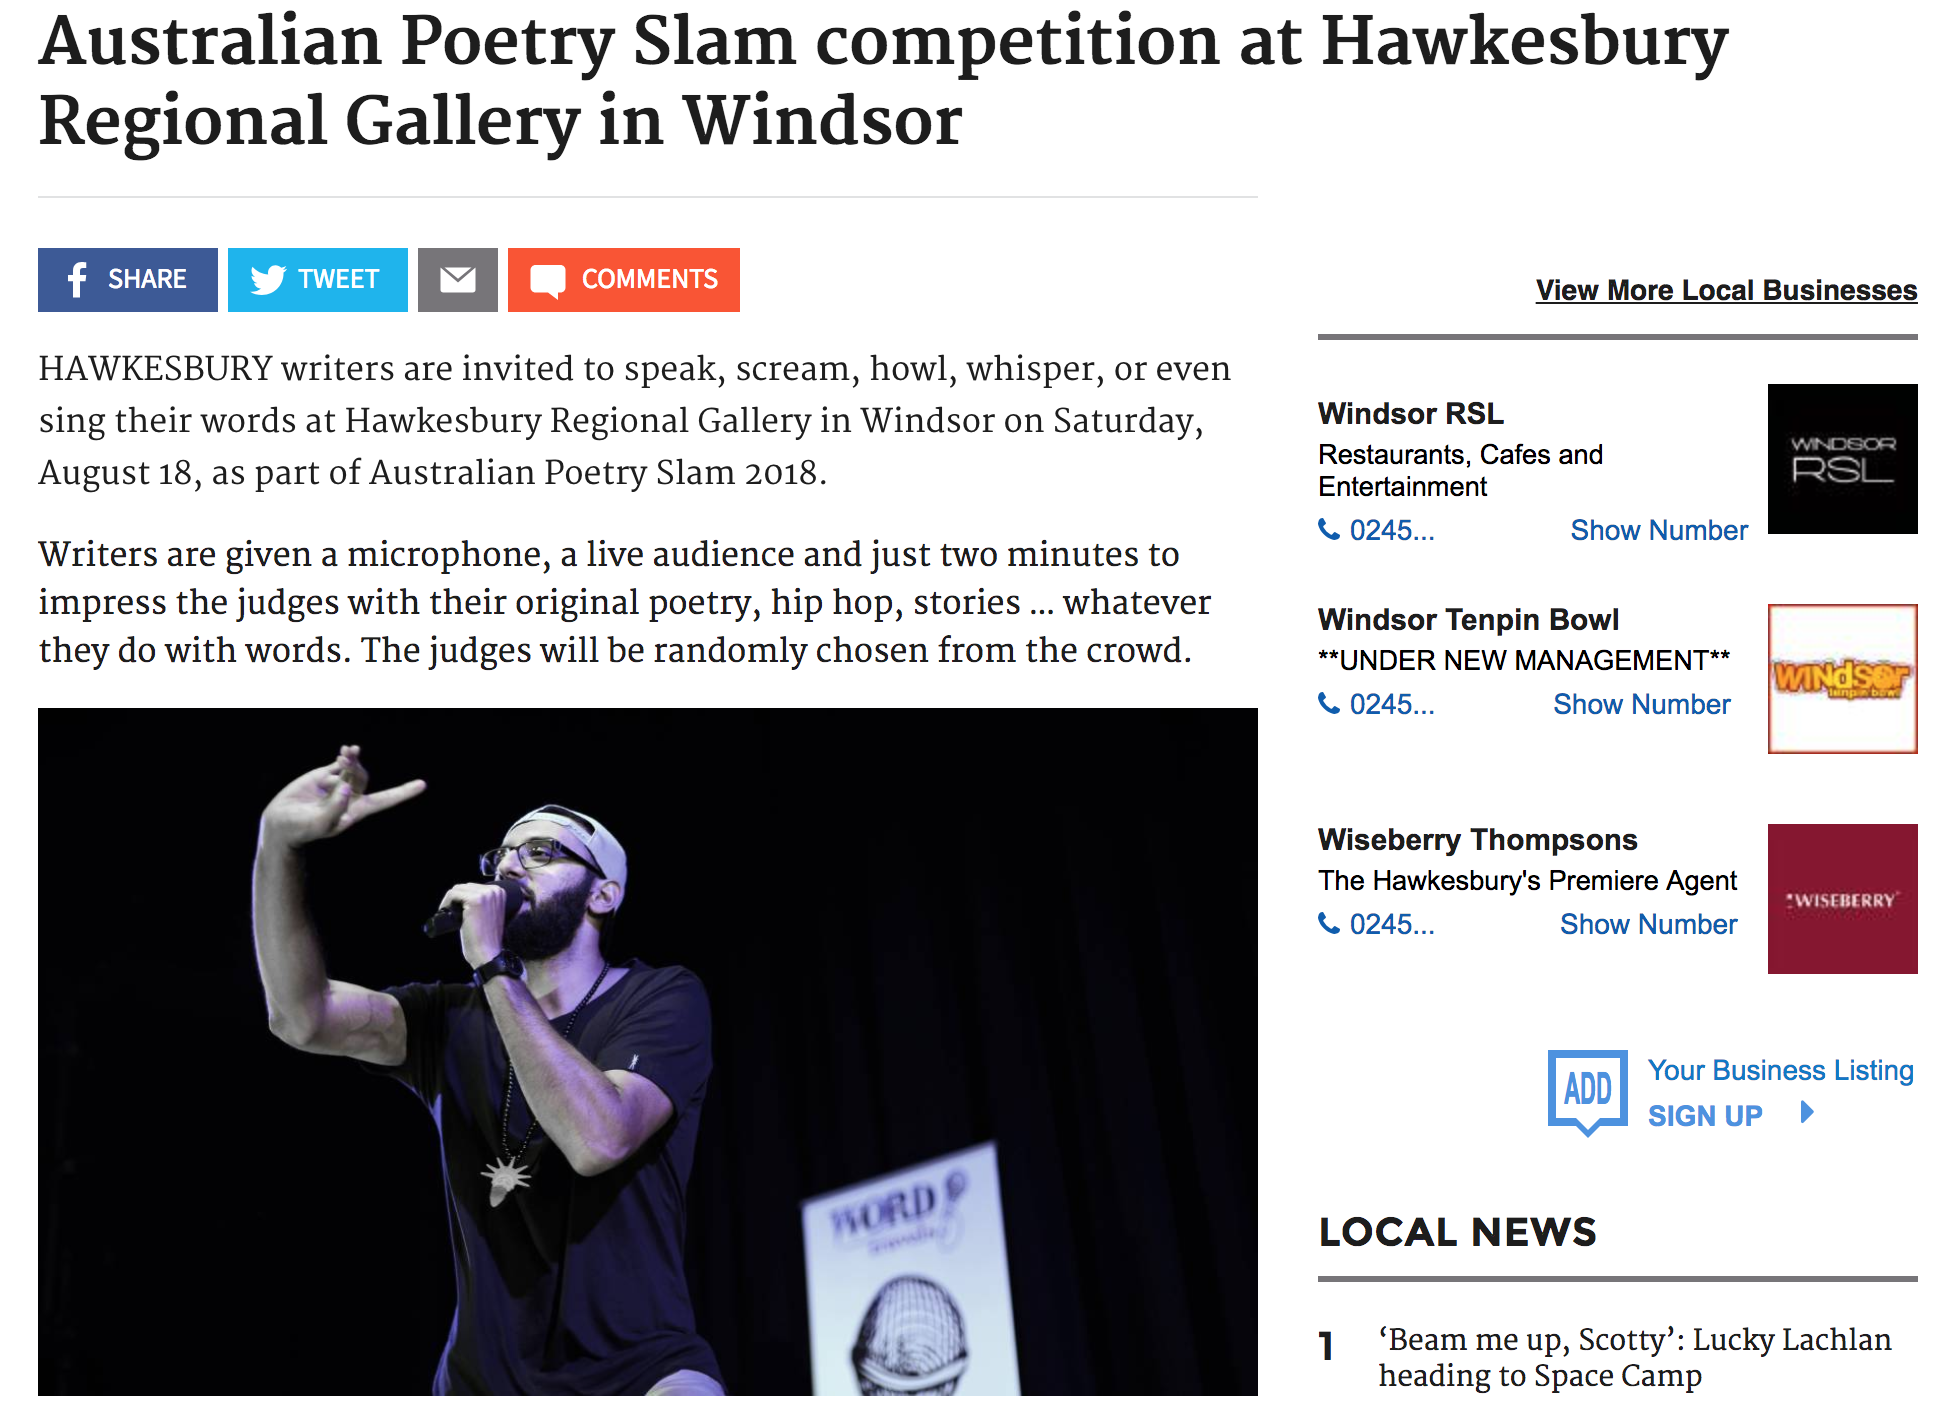 Australian Poetry Slam competition at Hawkesbury Regional Gallery in Windsor